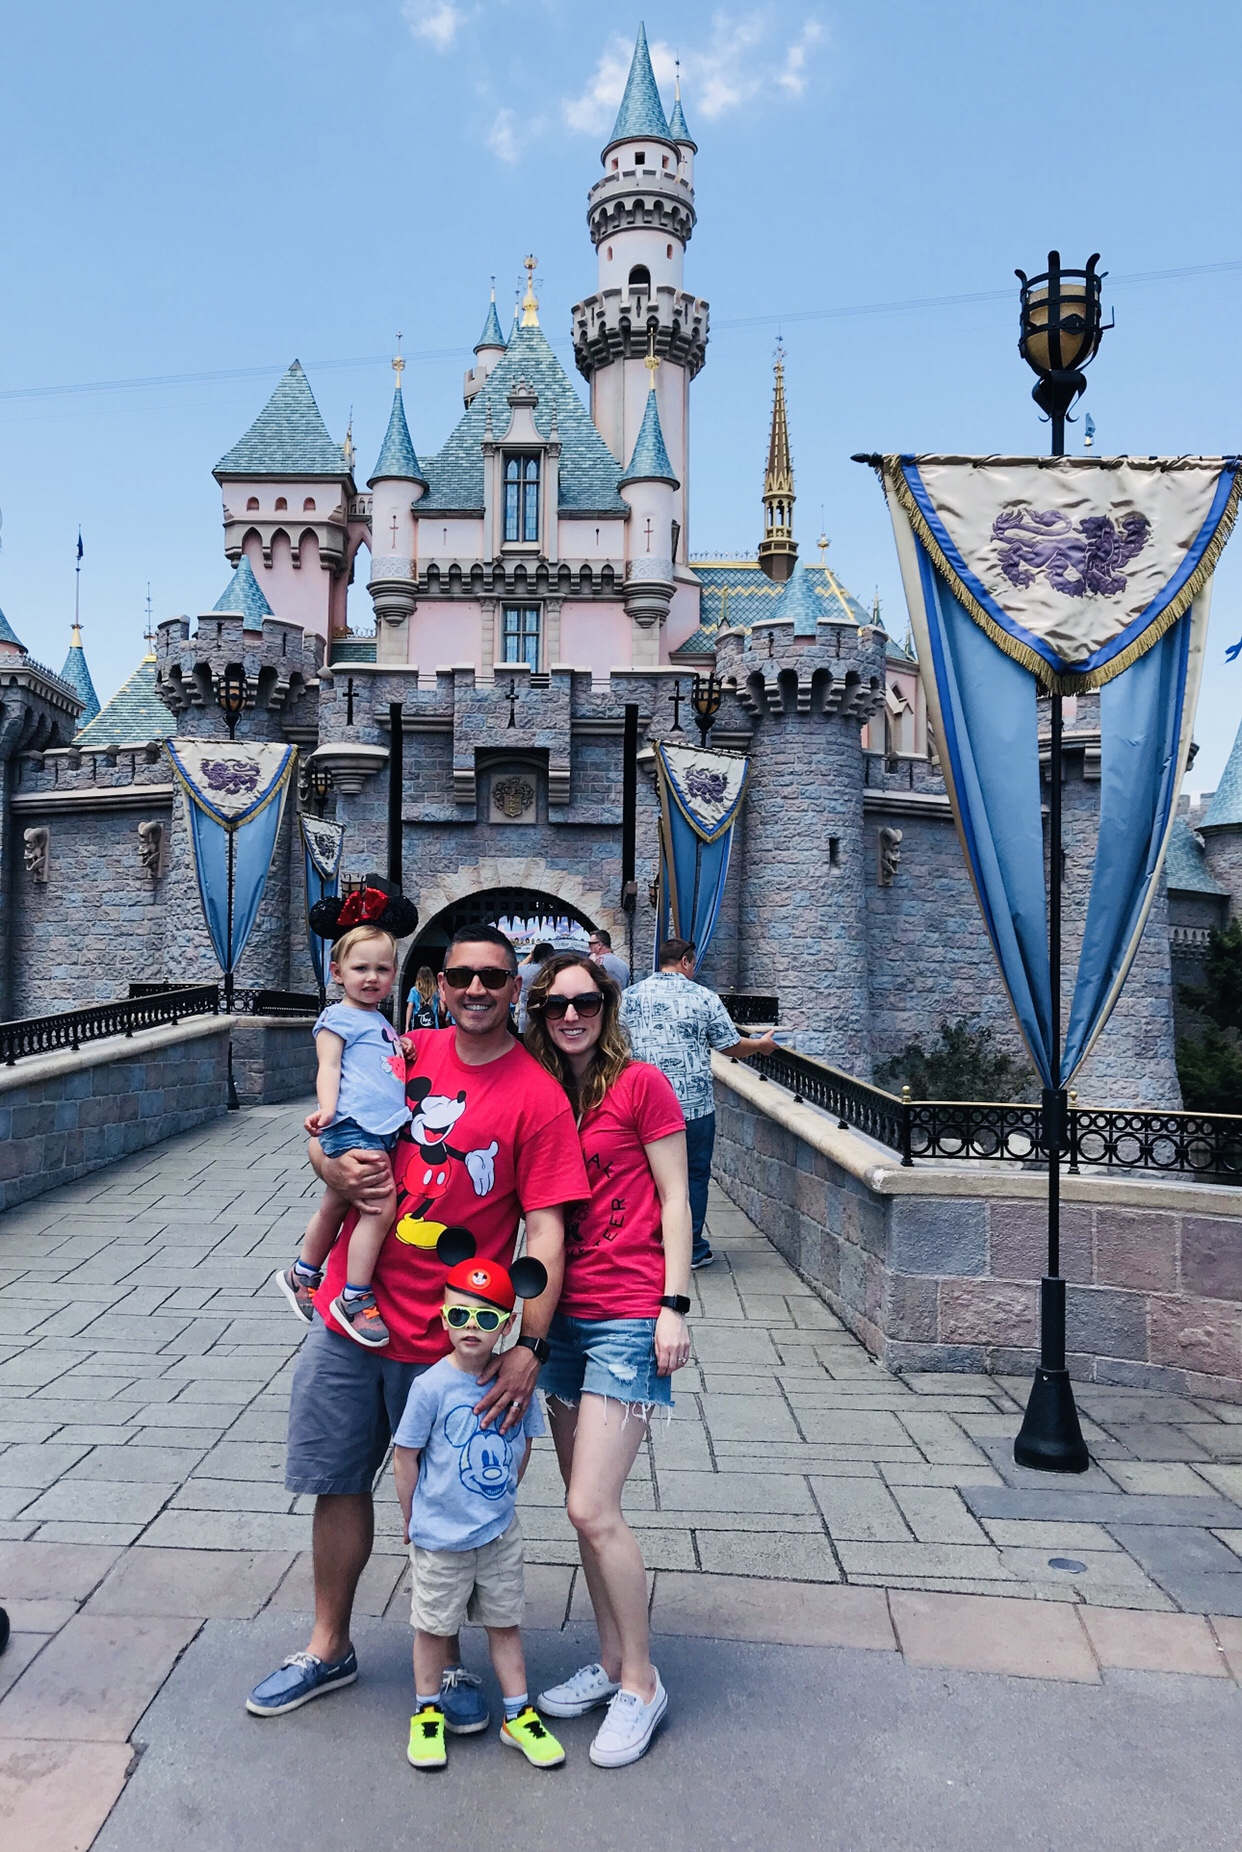 Picture in front of the disney castle